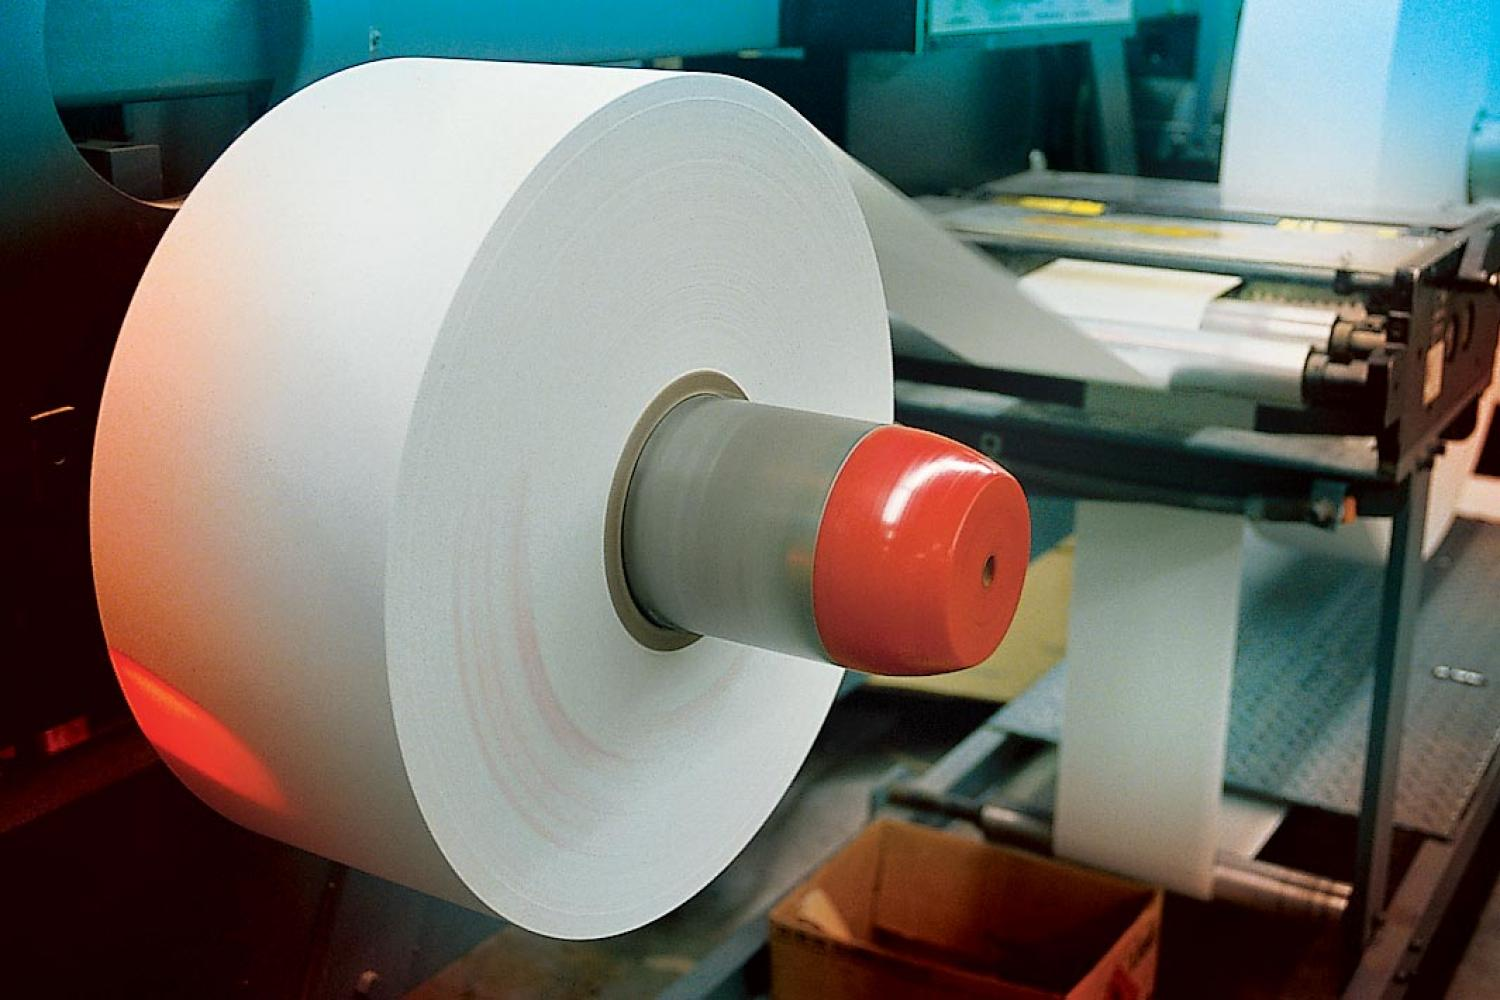 Large roll of eco-friendly paper